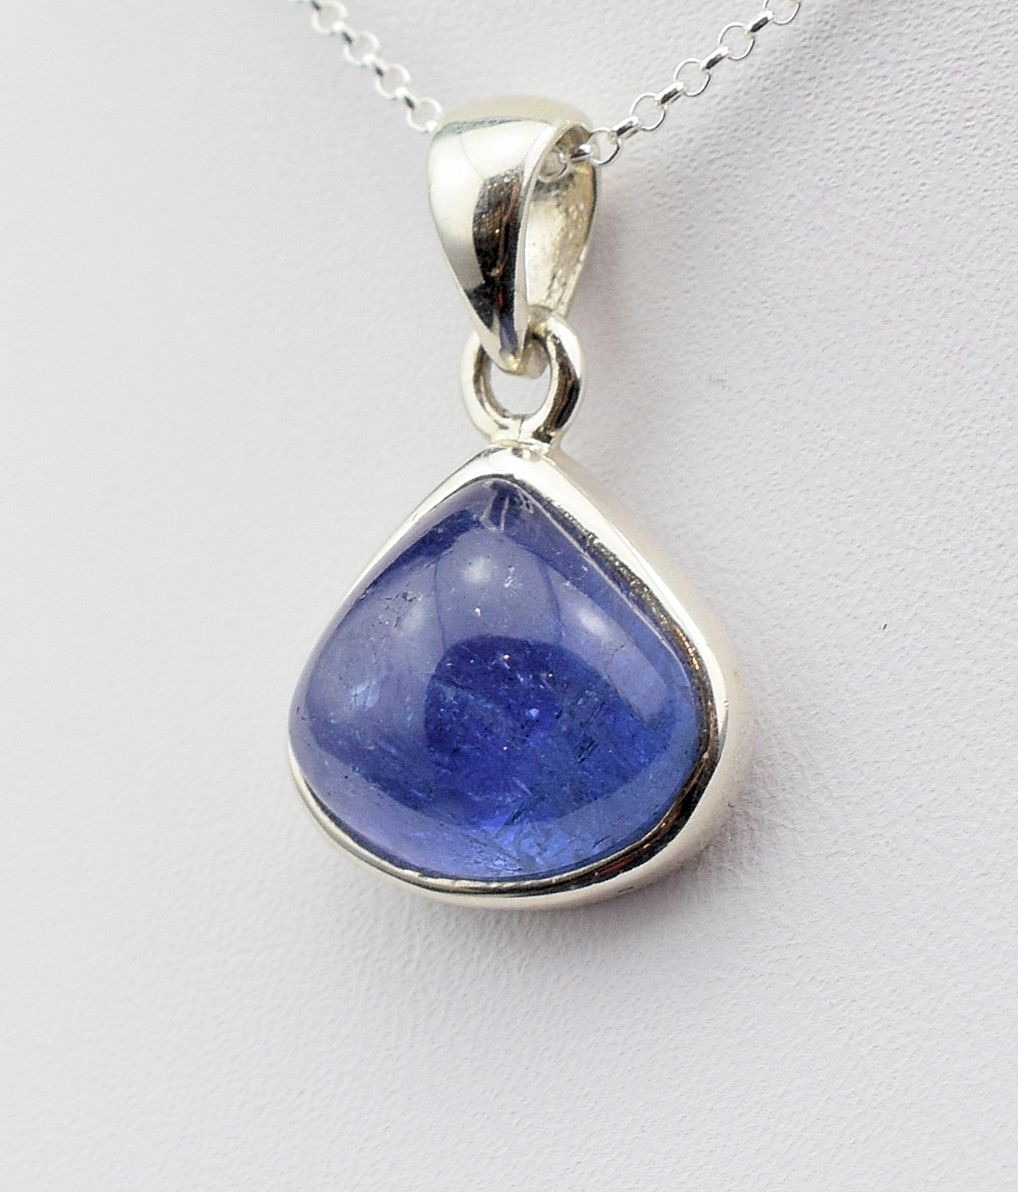 Pds 0586 Tanzanite Pendant in Sterling Silver (SOLD)